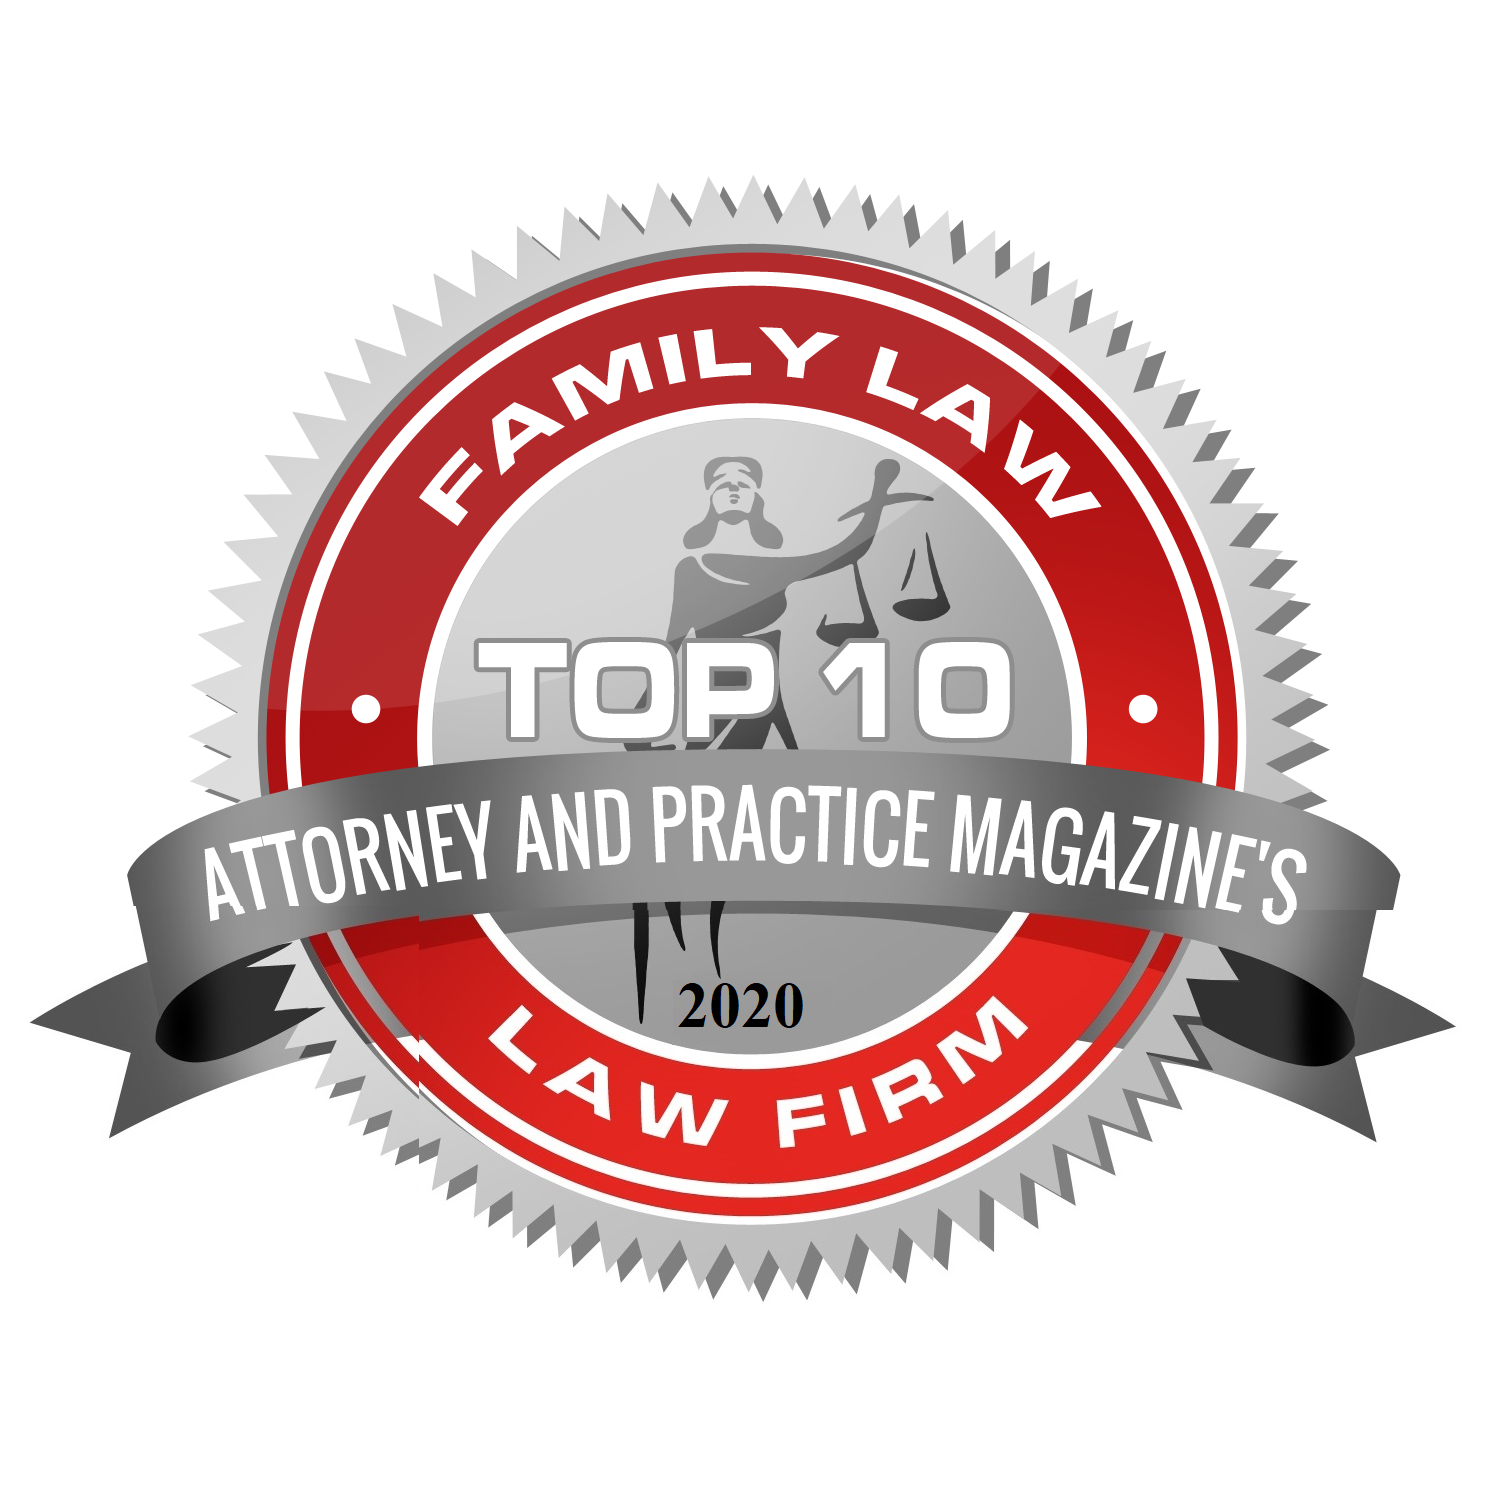 Attorney and Practice Magazine - 2020 Top 10 Family Law Law Firm